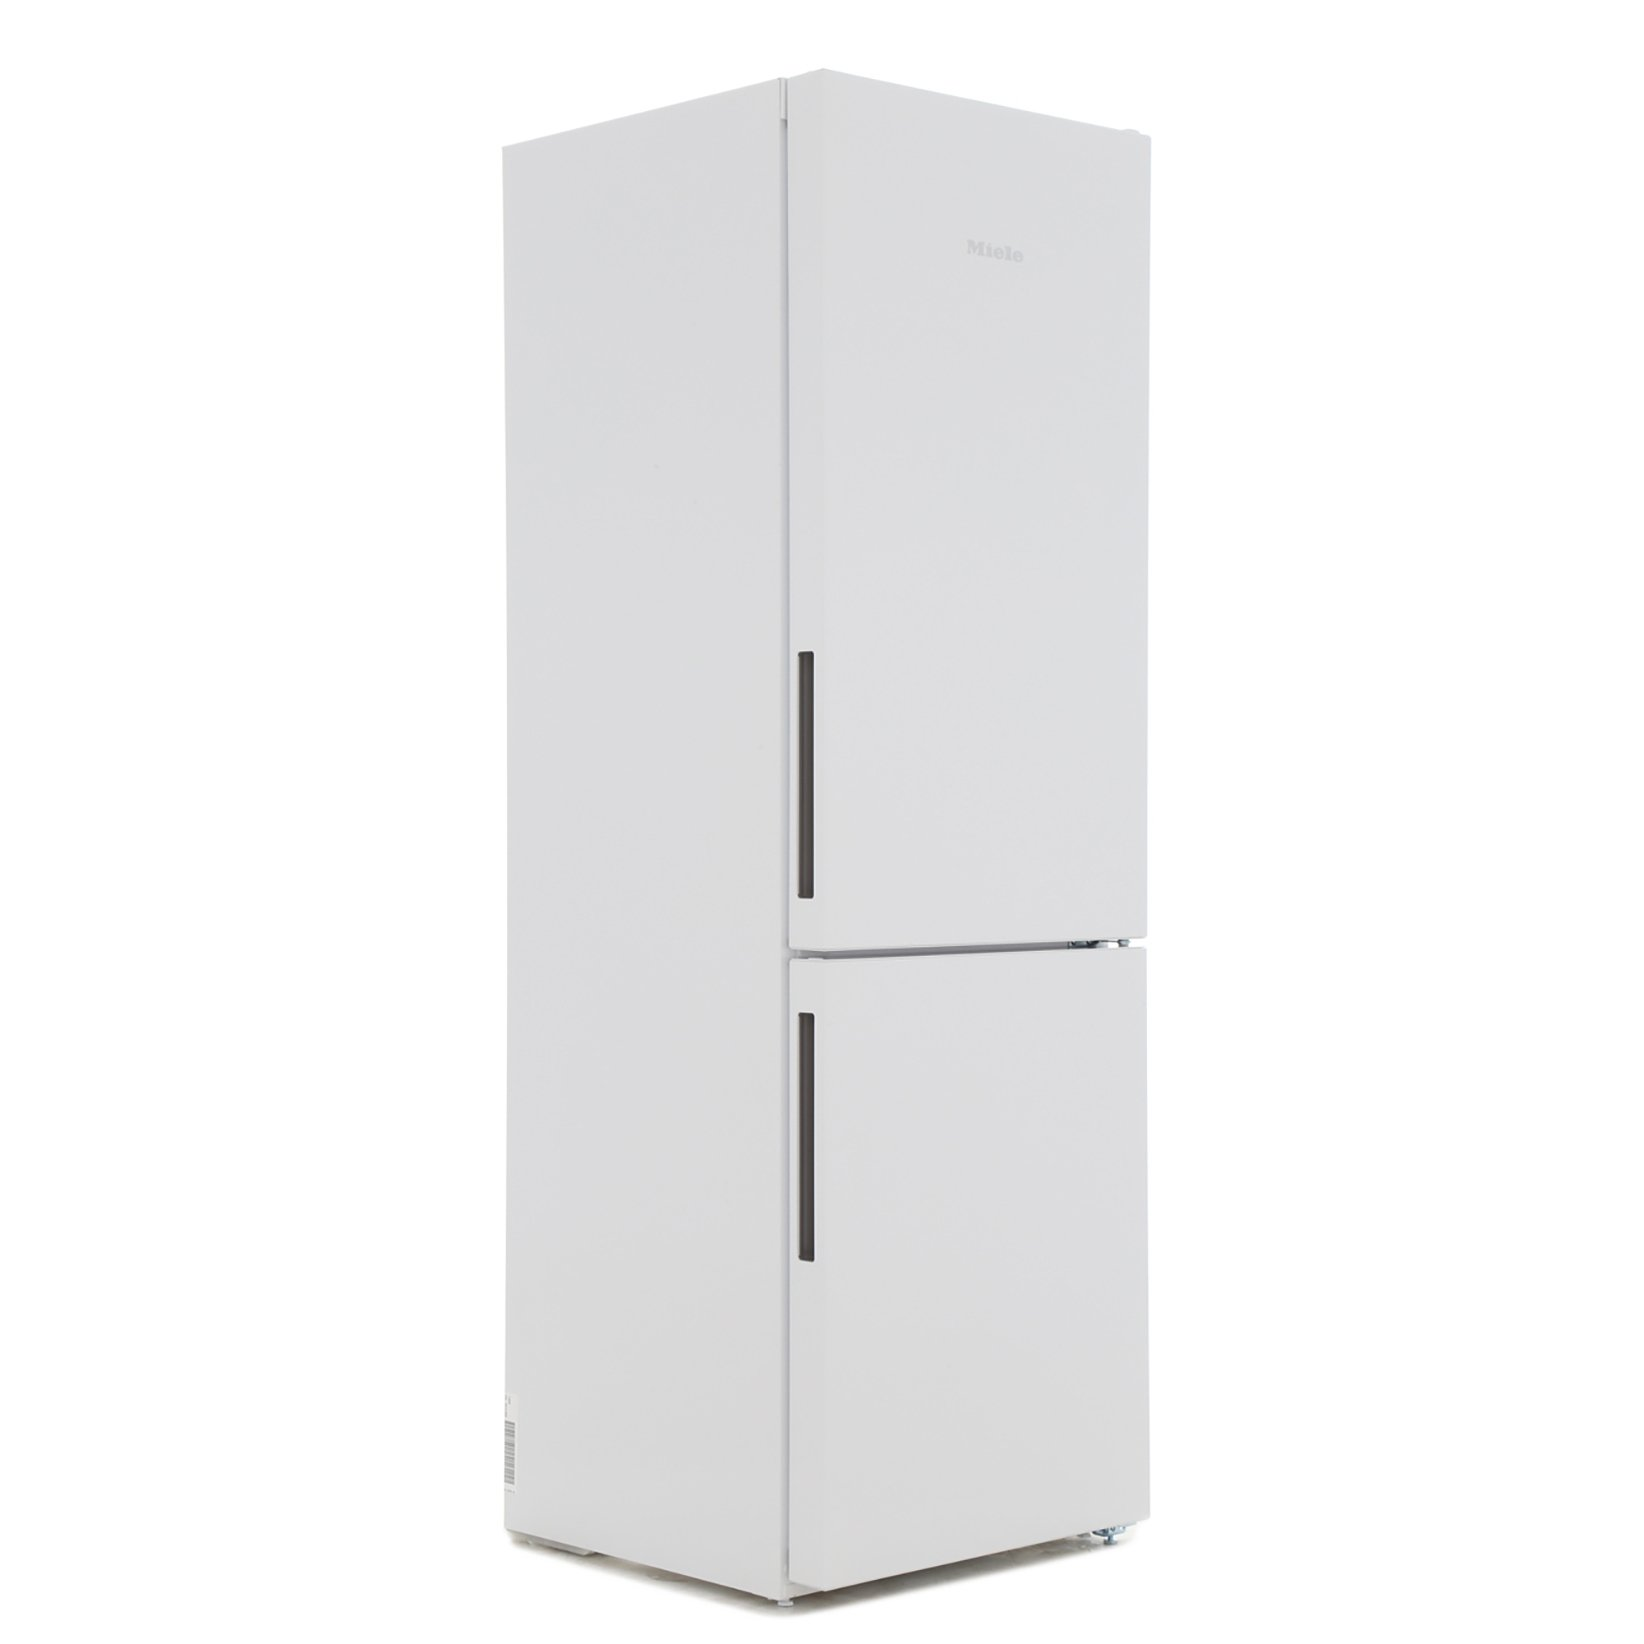 Miele KFN28132D White Frost Free Fridge Freezer